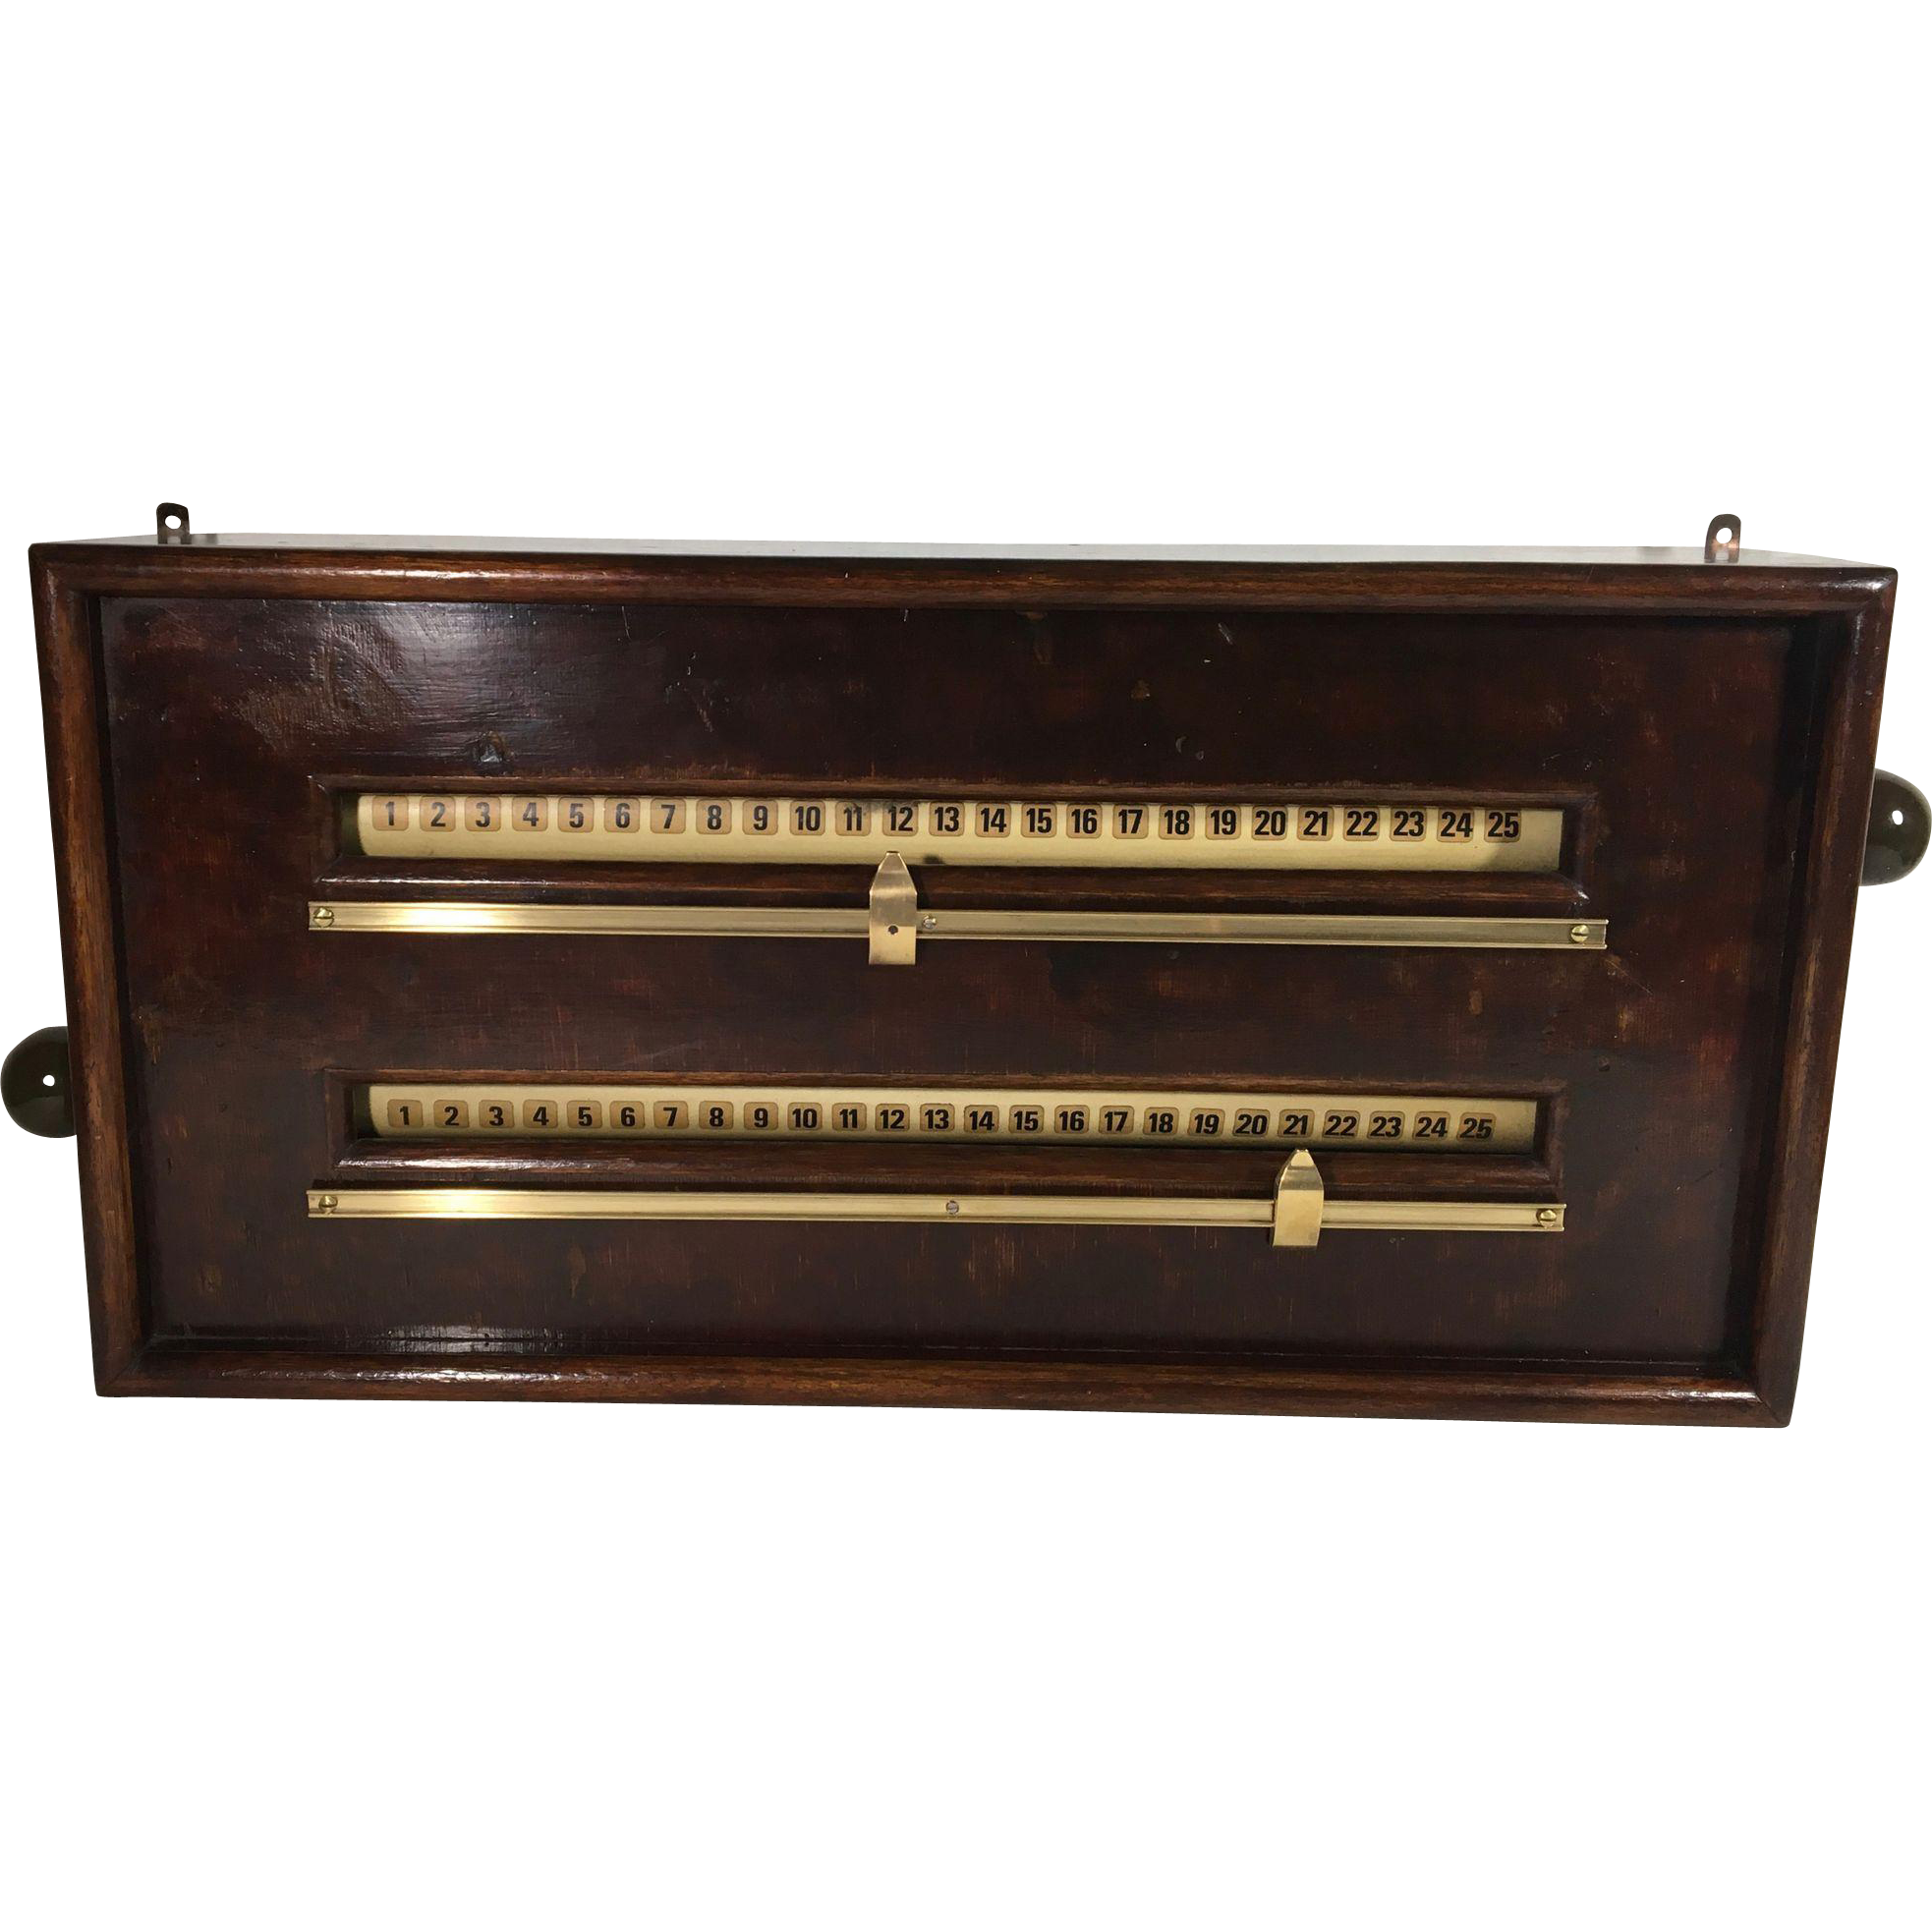 Antique Rollerboard Snooker Scoreboard Made of Mahogany and Brass